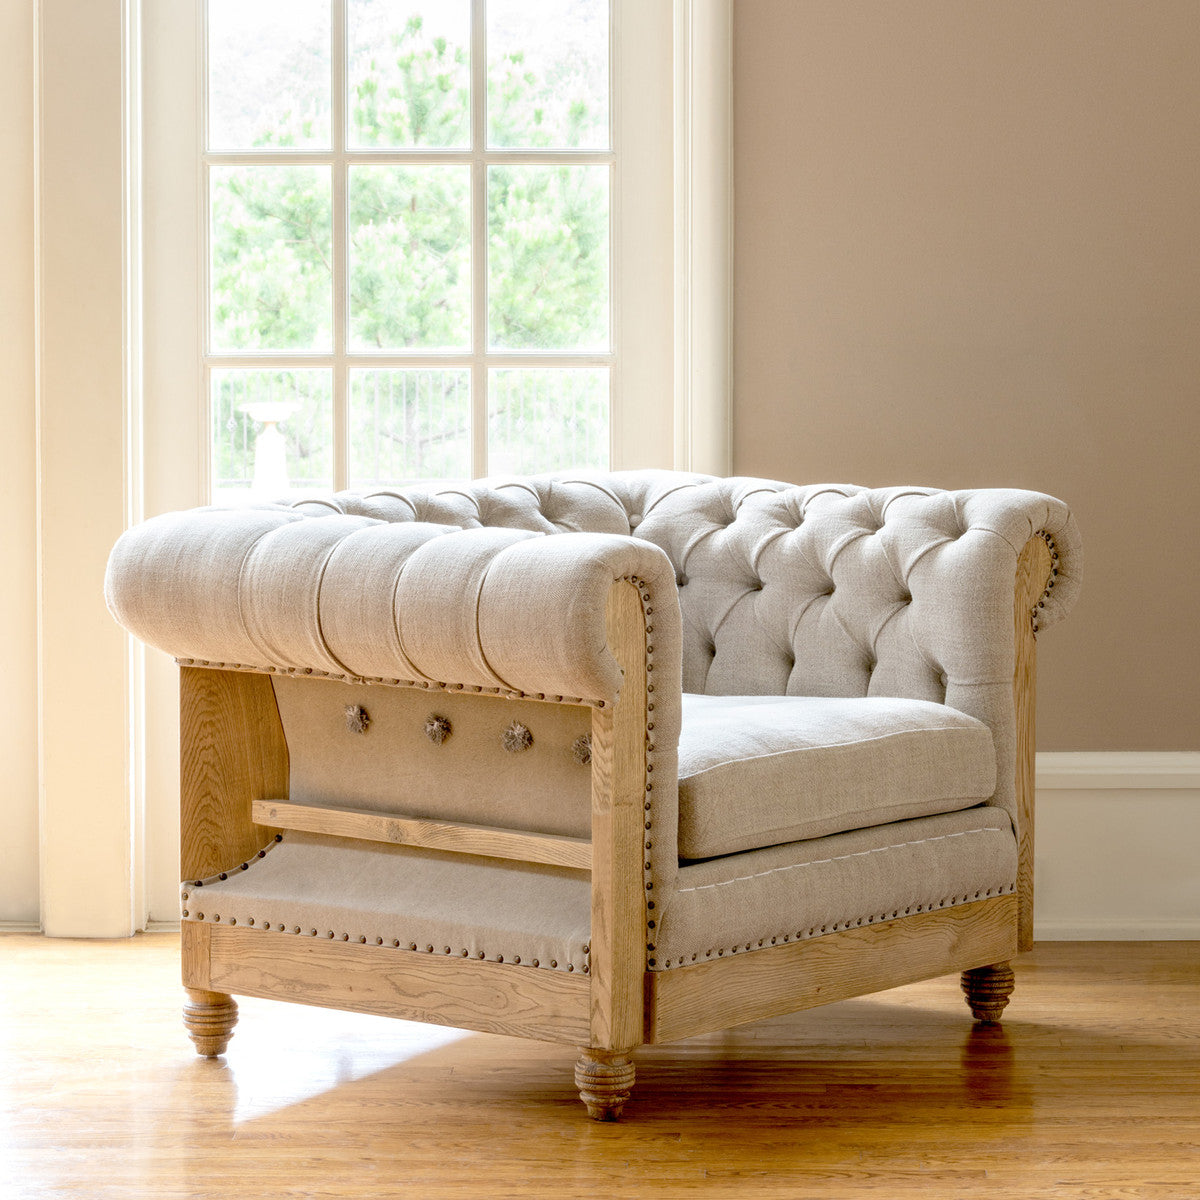 park hill capital hotel chesterfield chair sand, restoration hardware deconstructed chesterfields for sale